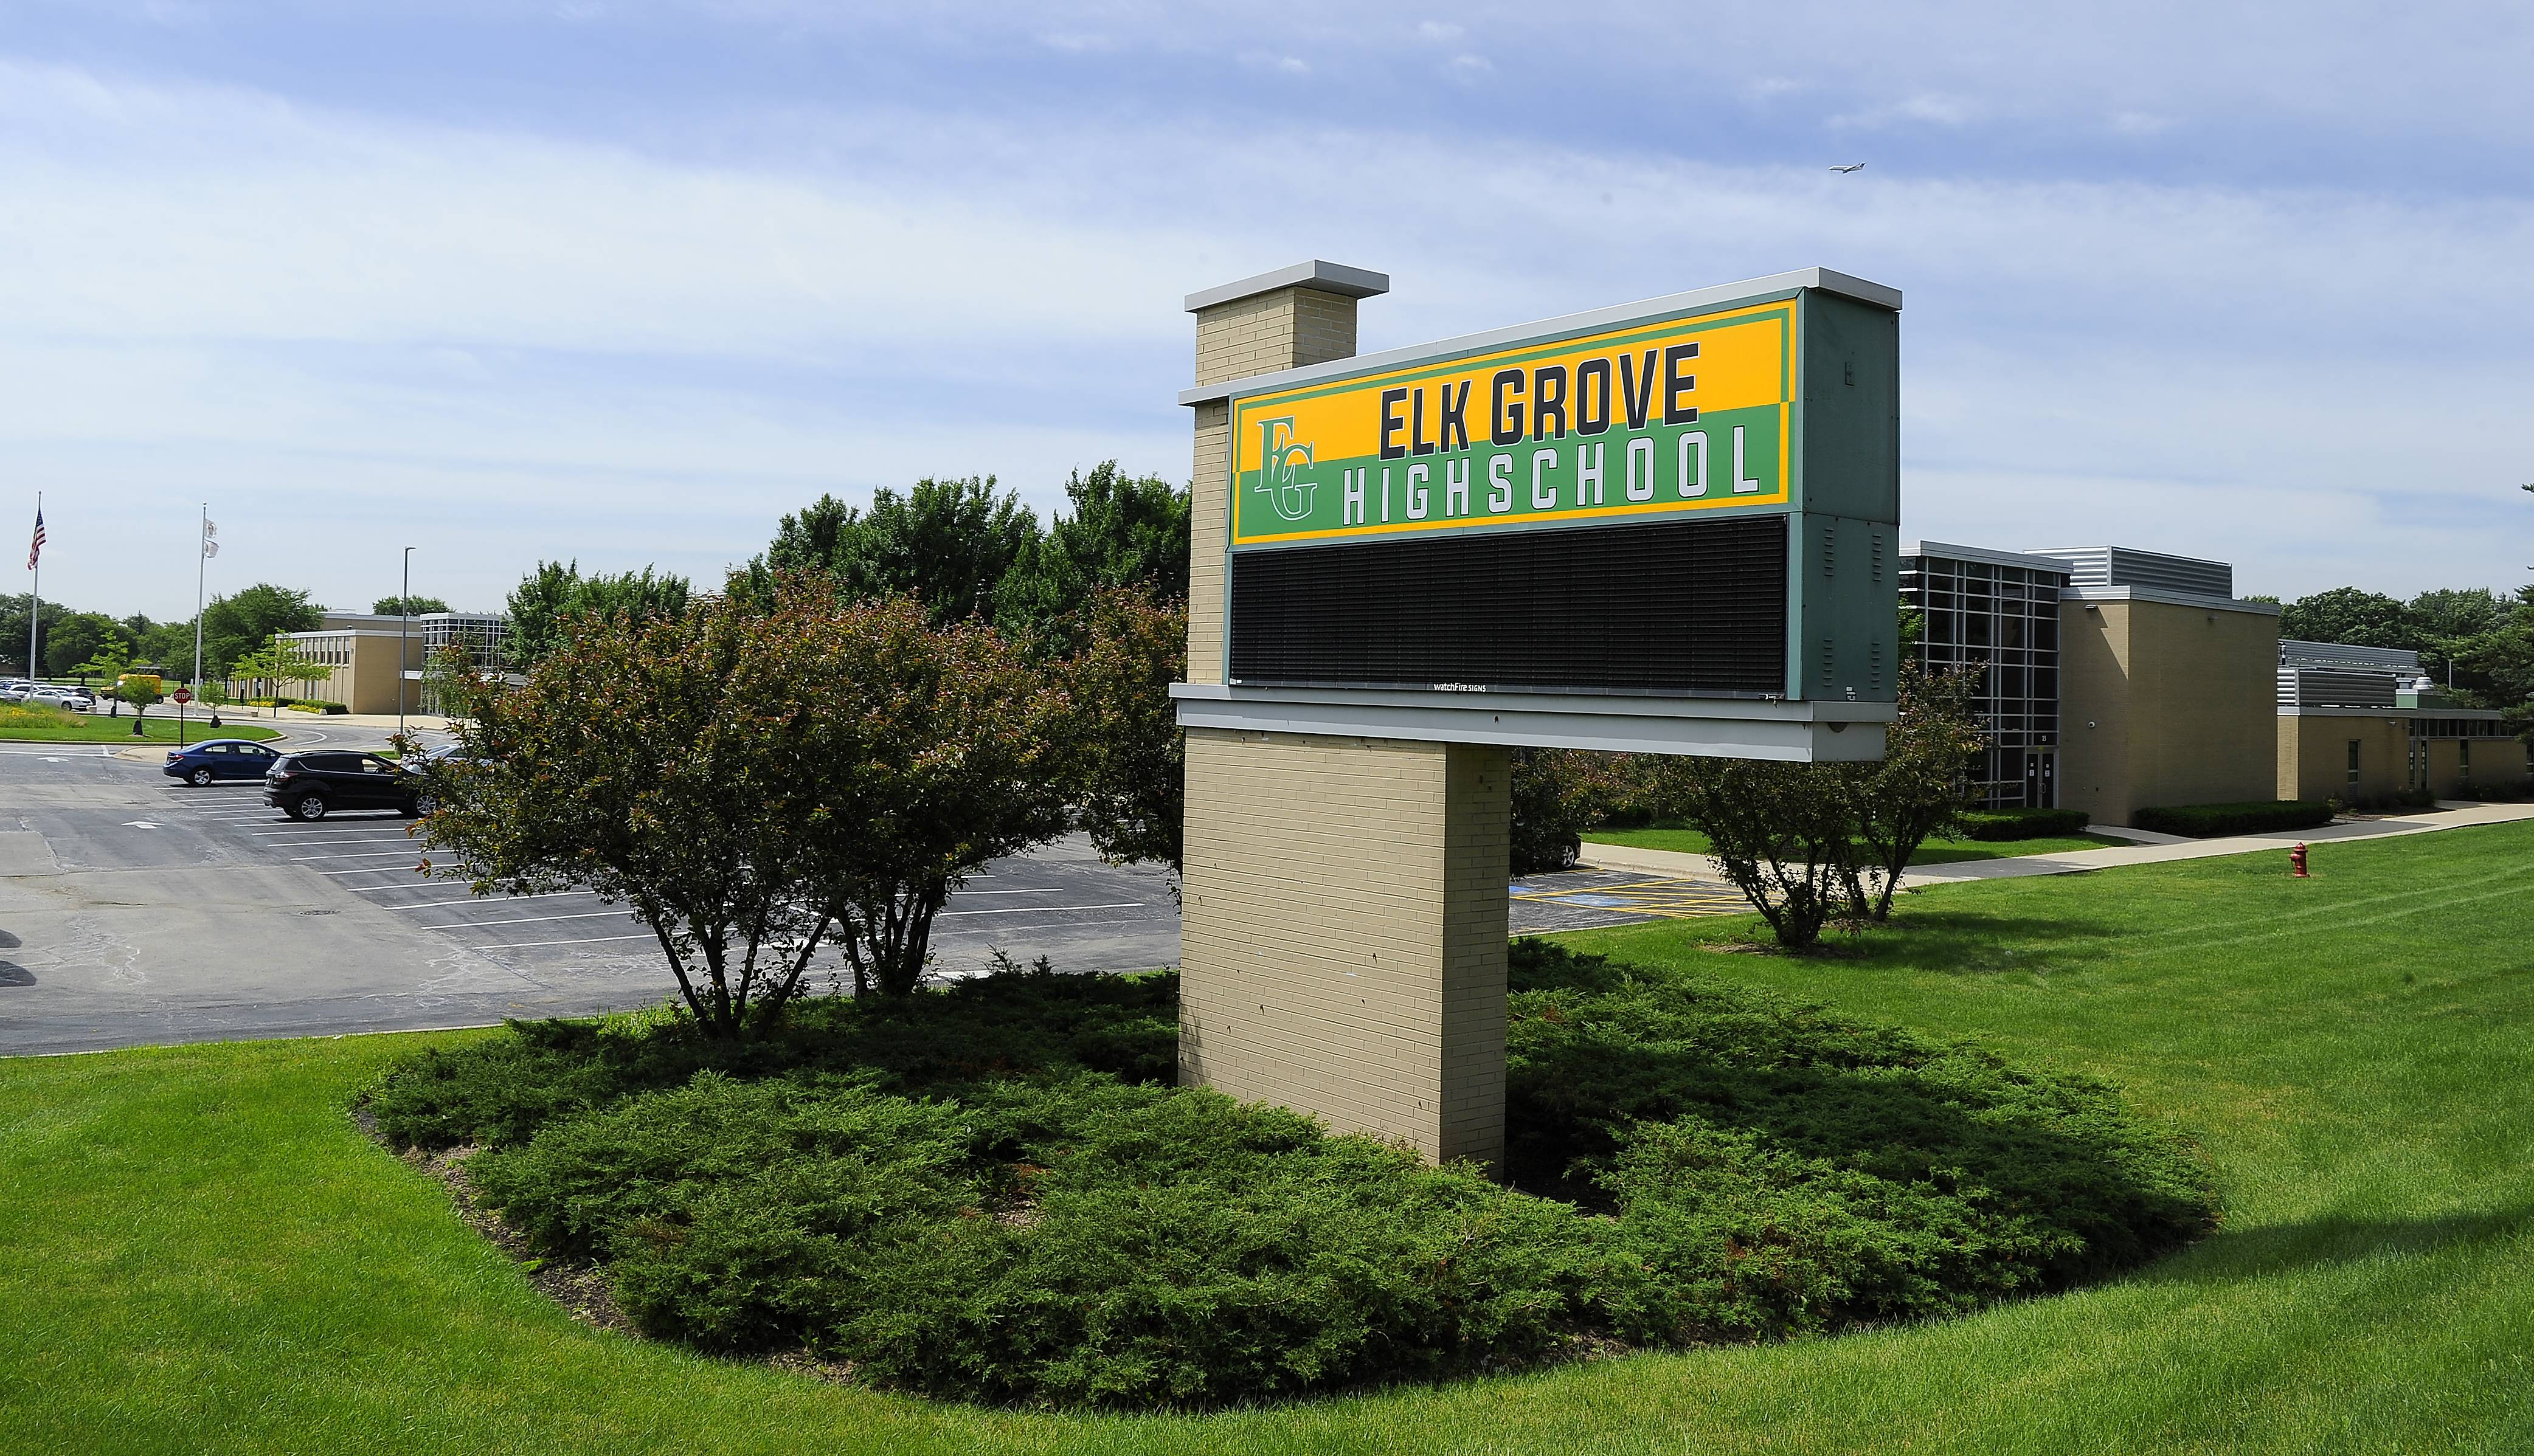 Elk Grove High School graduated its inaugural senior class in 1968. Some of those grads are getting together this weekend for their 50-year reunion.